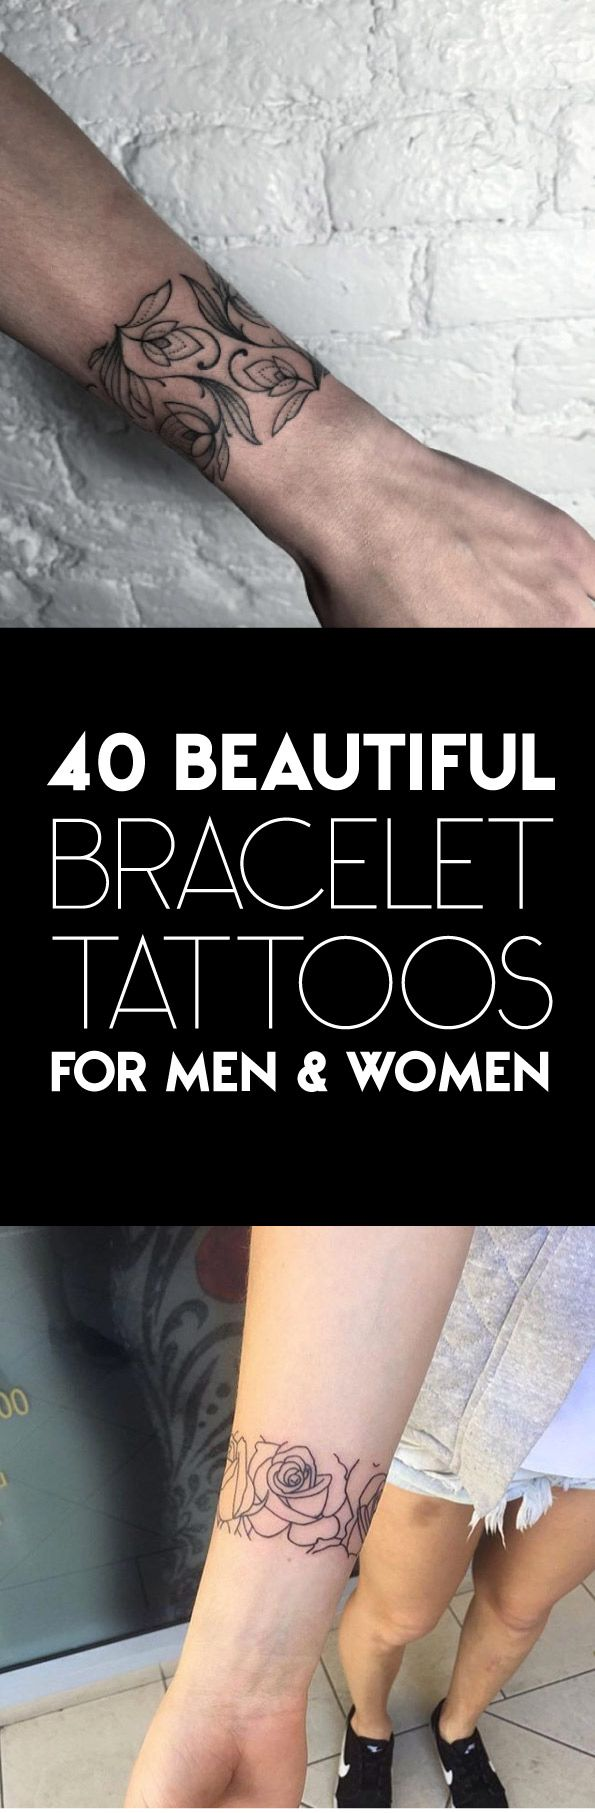 beautiful bracelet tattoos for men u women art pinterest